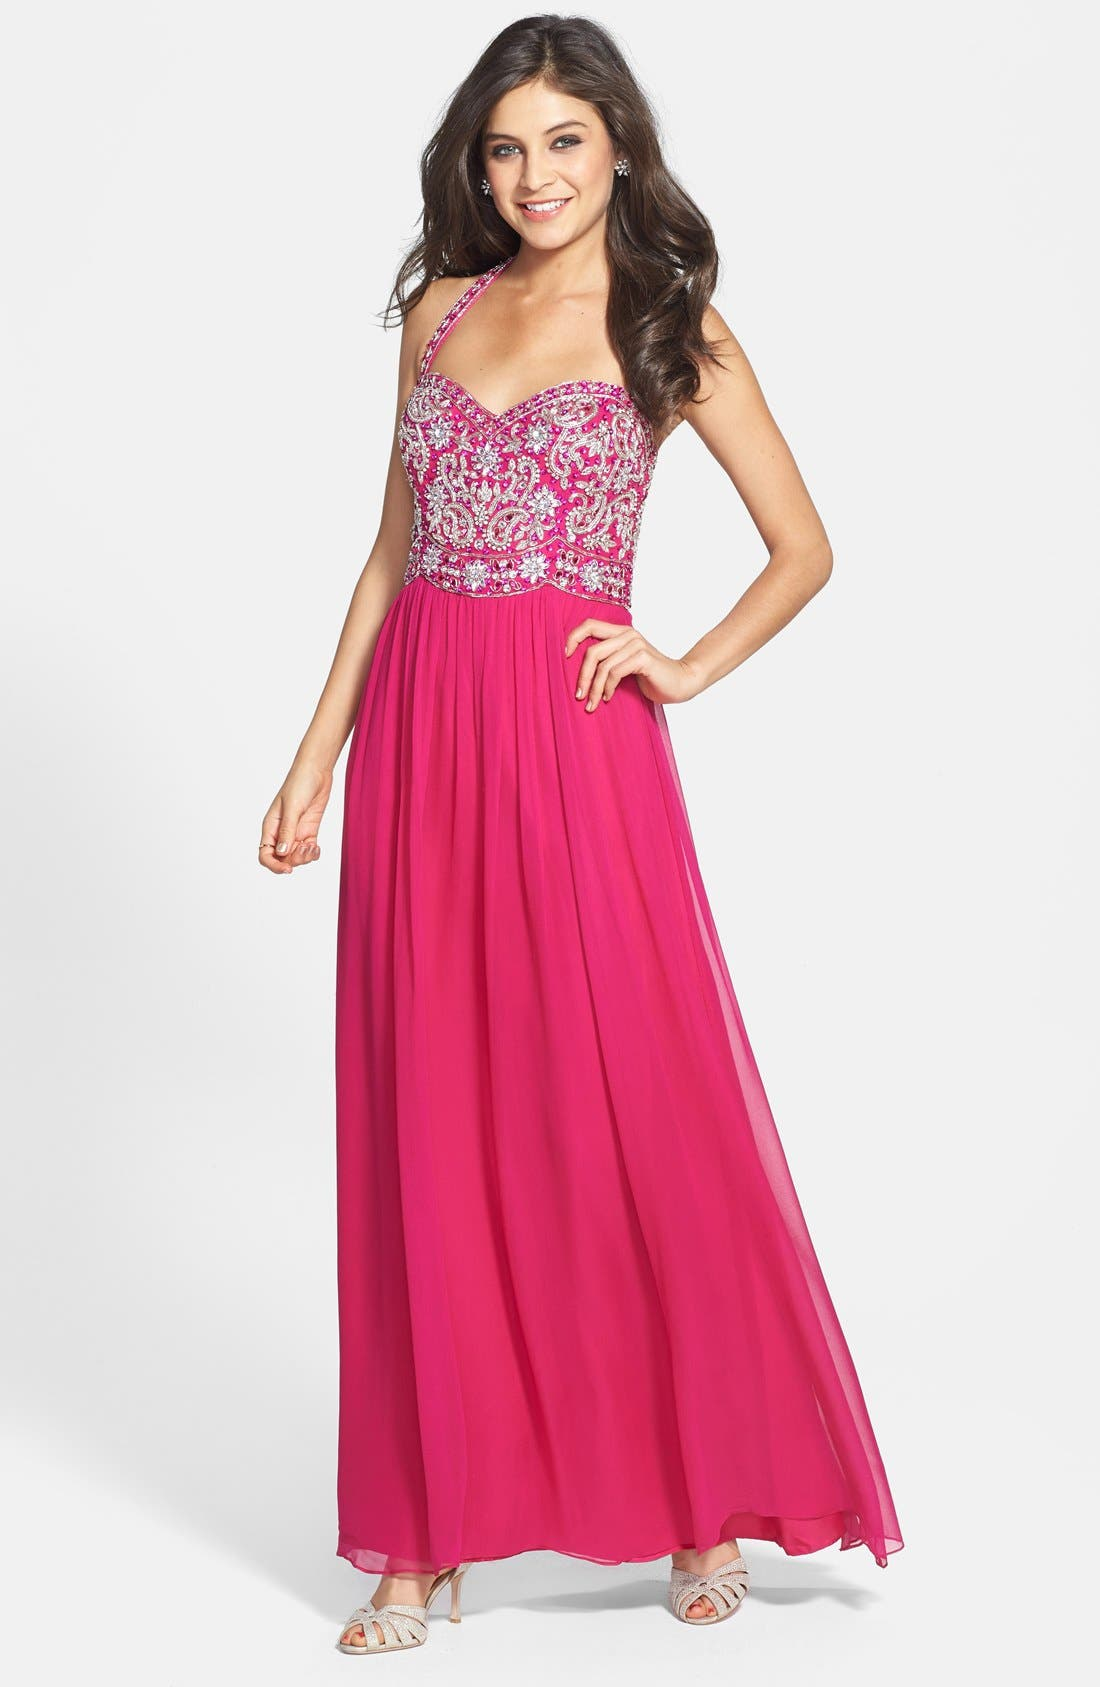 Main Image - Sean Collection Beaded Bodice Chiffon Halter Gown